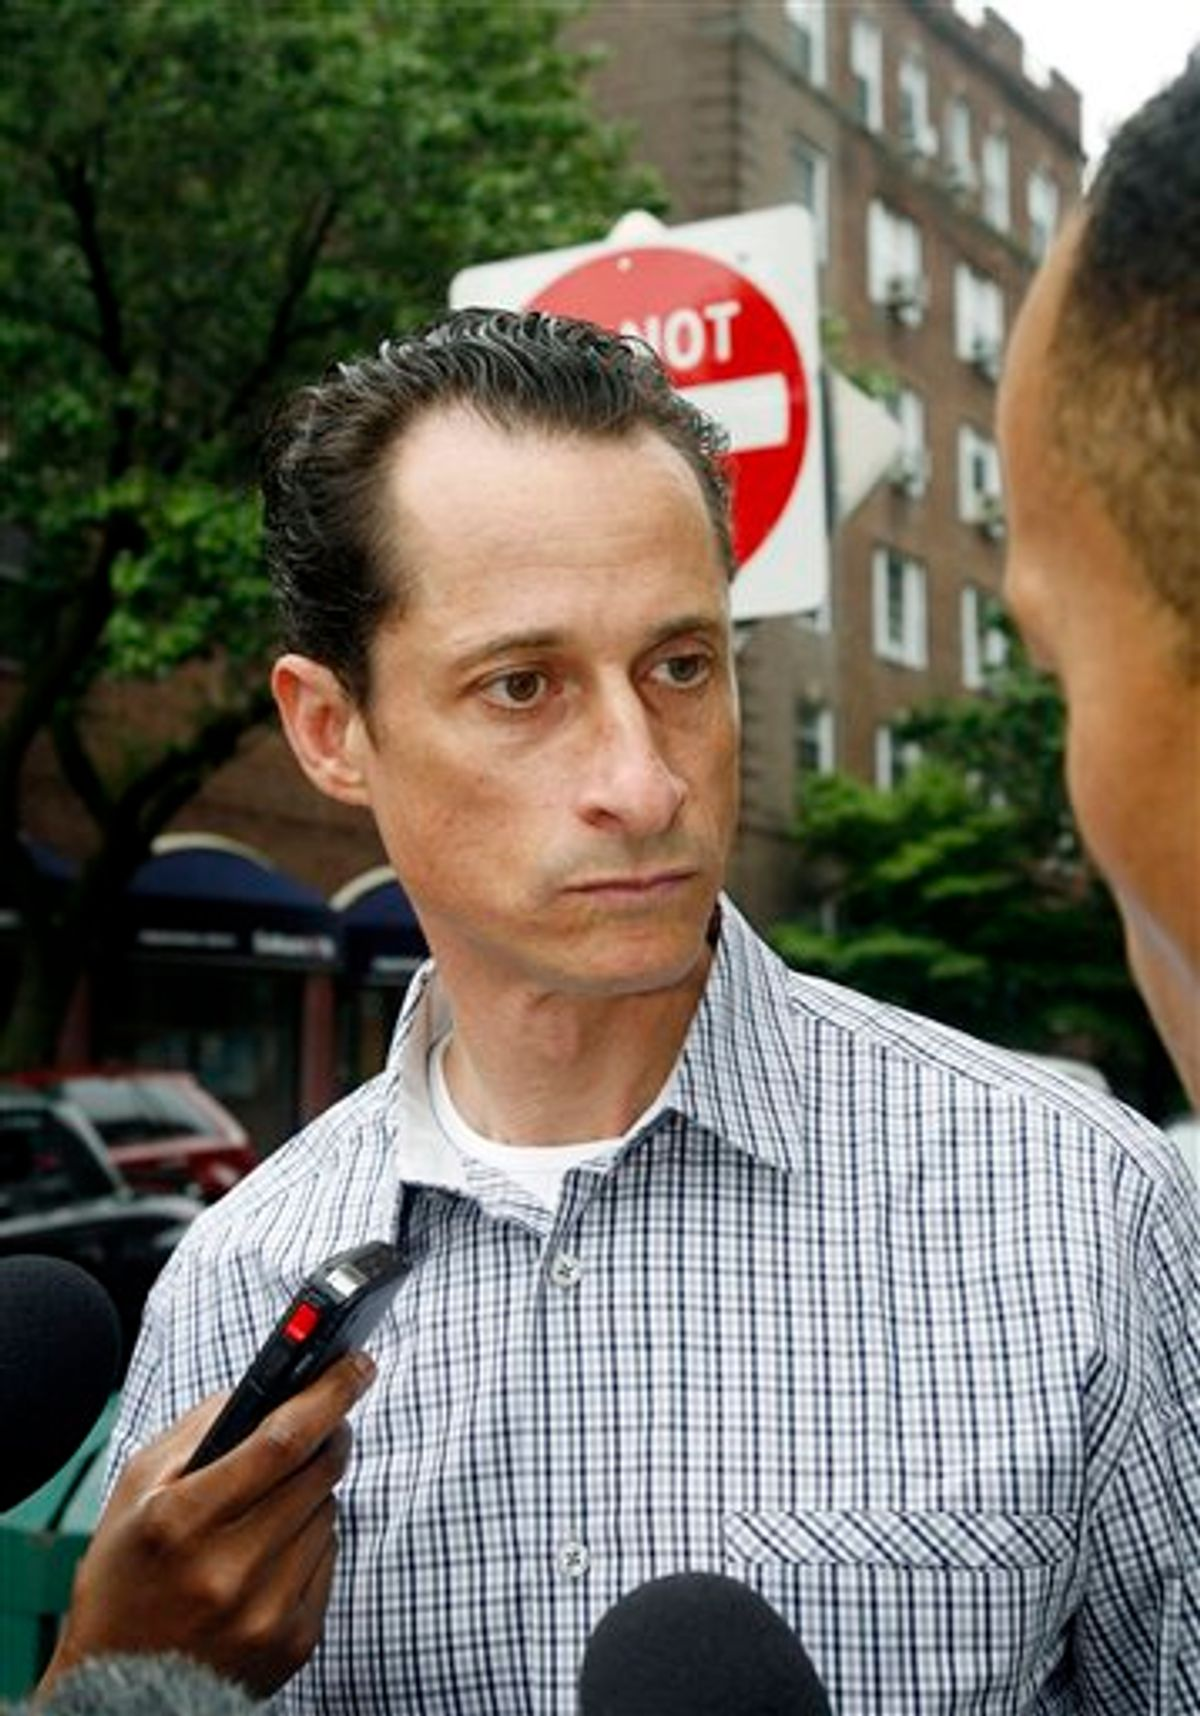 Rep. Anthony Weiner, D-N.Y., answers questions from the media as he carries his laundry to a laundromat near his home in the Queens borough of New York, Saturday, June  11, 2011. The 46-year-old congressman acknowledged Friday that he had online contact with a 17-year-old girl from Delaware but said there was nothing inappropriate. (AP Photo/David Karp) (AP)